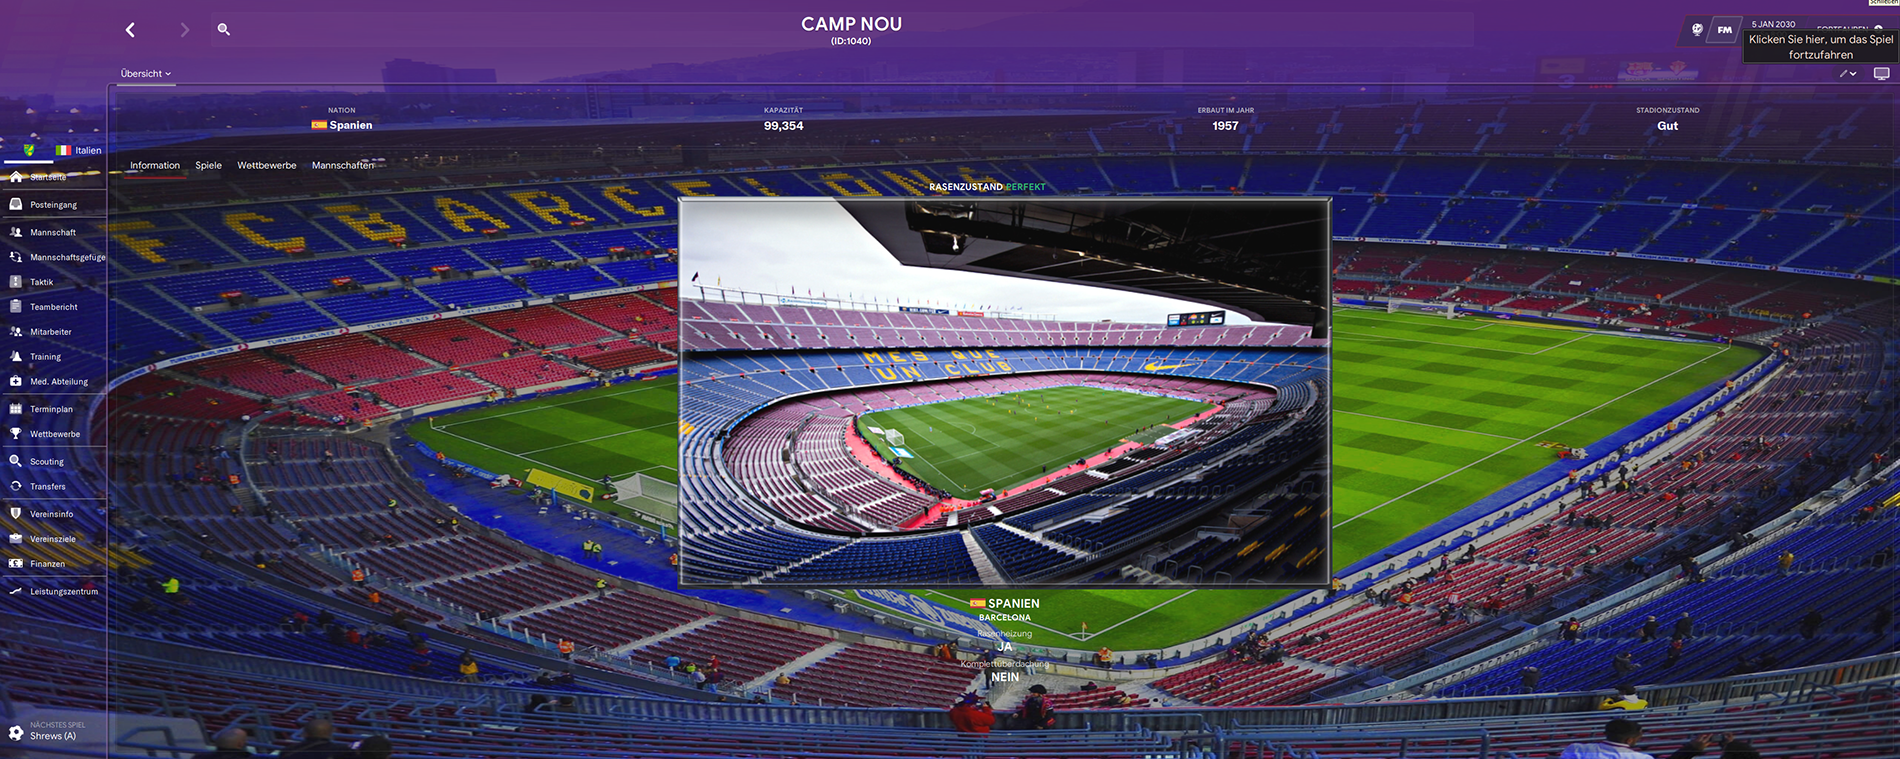 [Bild: background-stadium3.png]